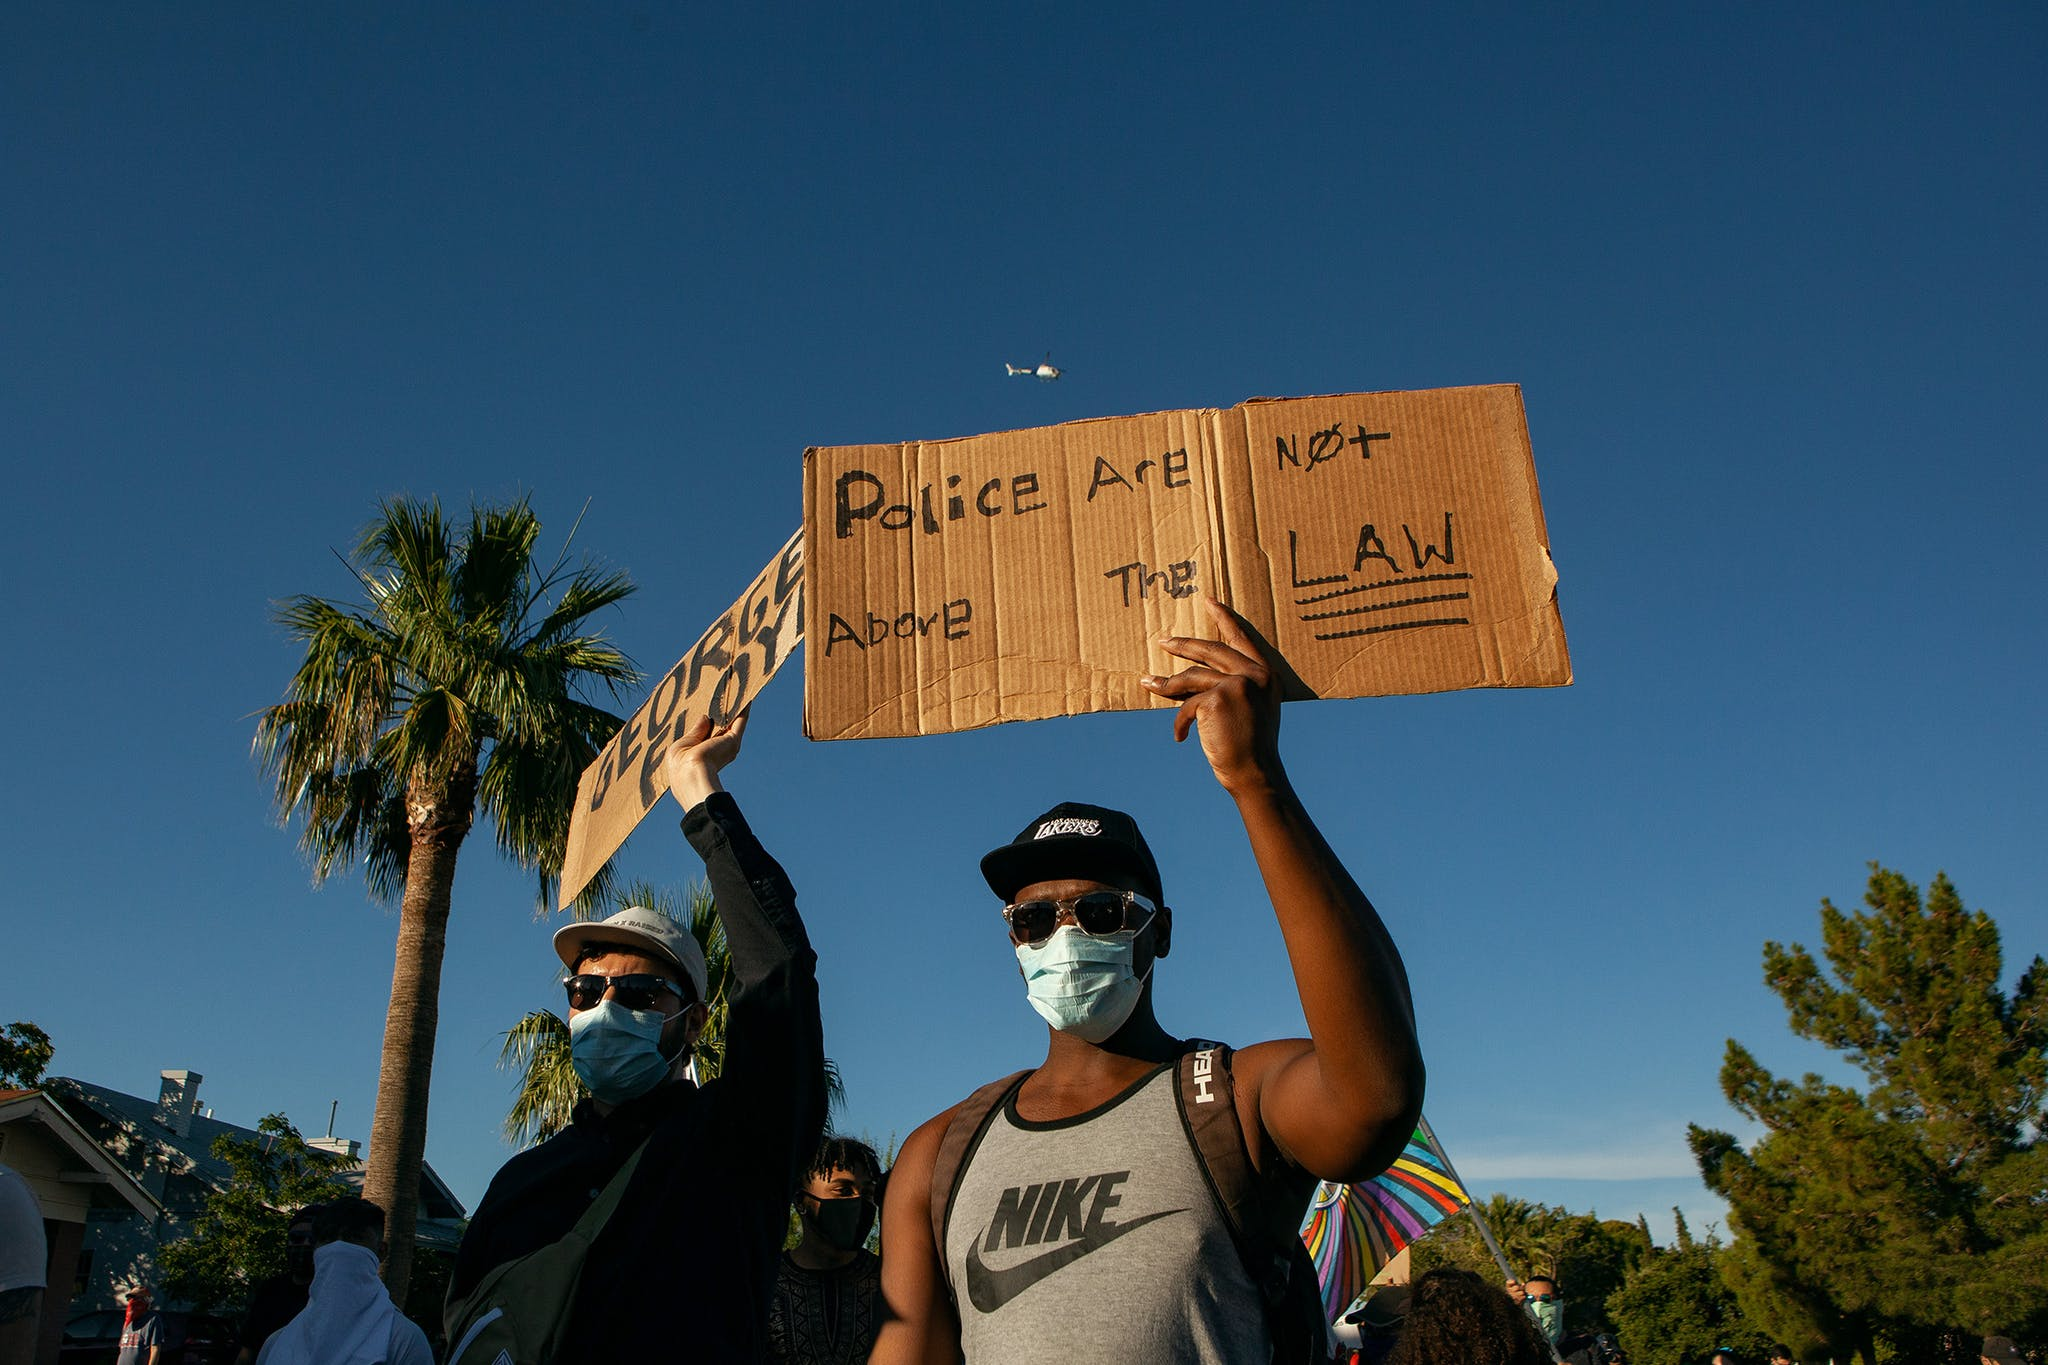 Protesters begin a march from Memorial Park to police headquarters in El Paso on May 31, 2020. A Customs and Border Patrol helicopter provided surveillance during the protest against police brutality.